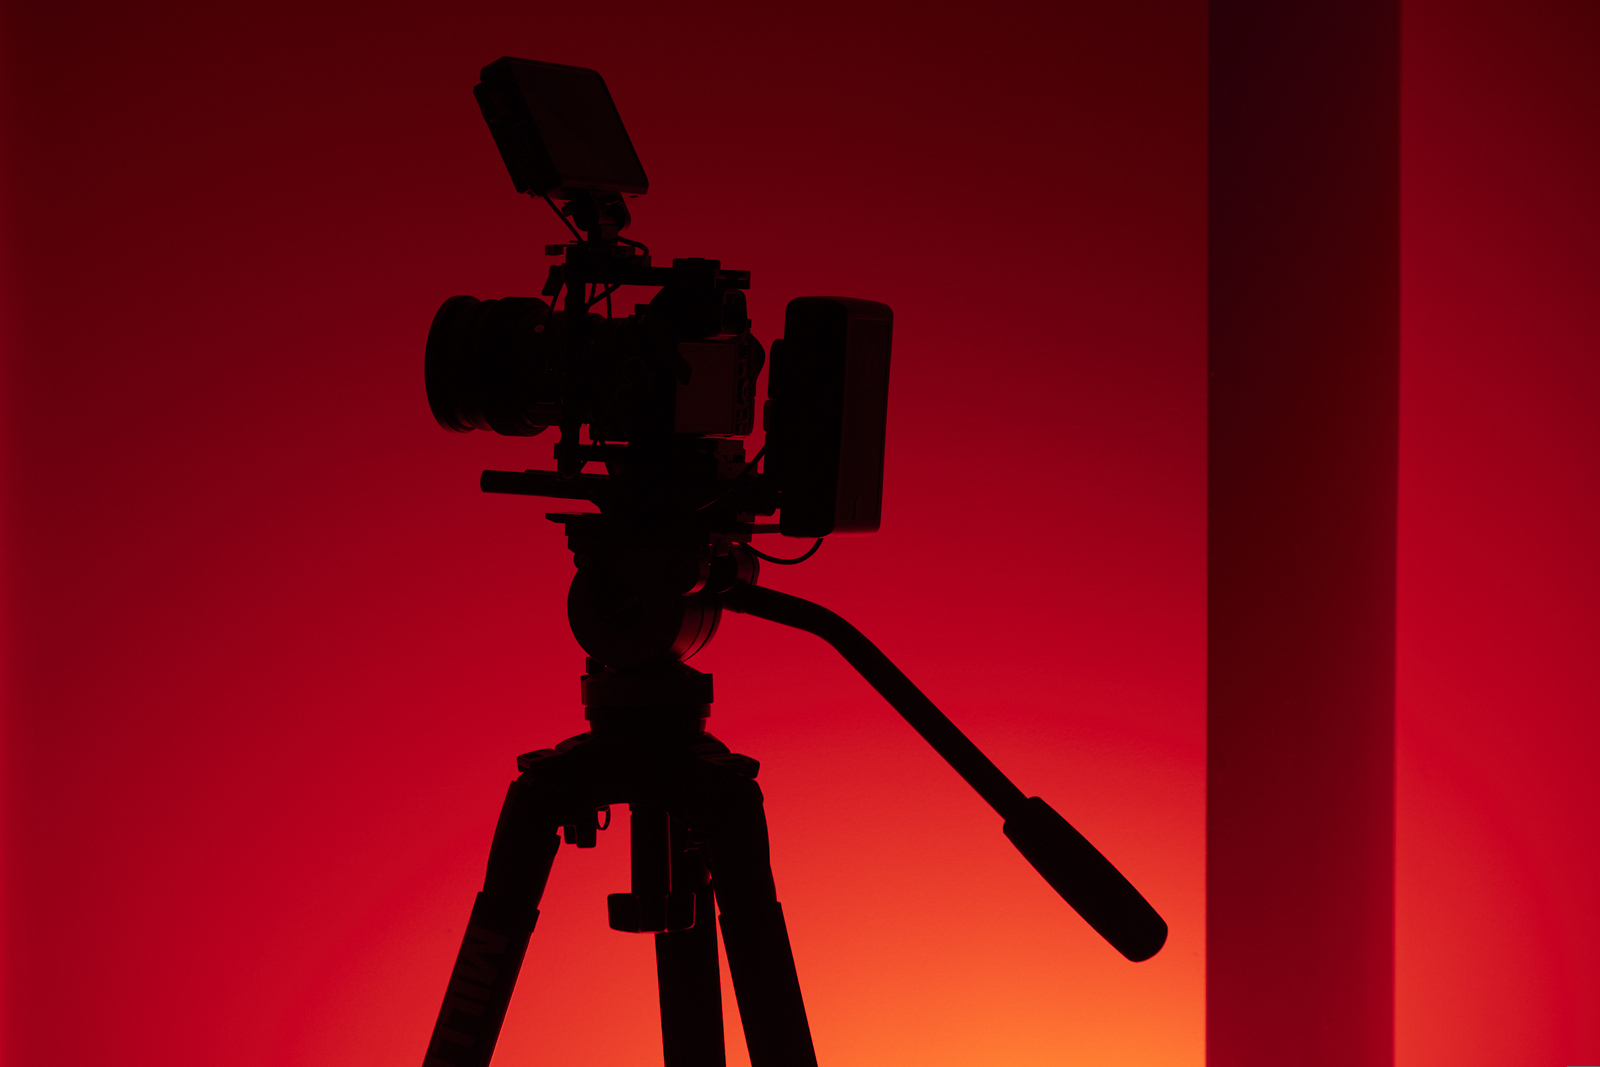 video camera rig silhouette on red background